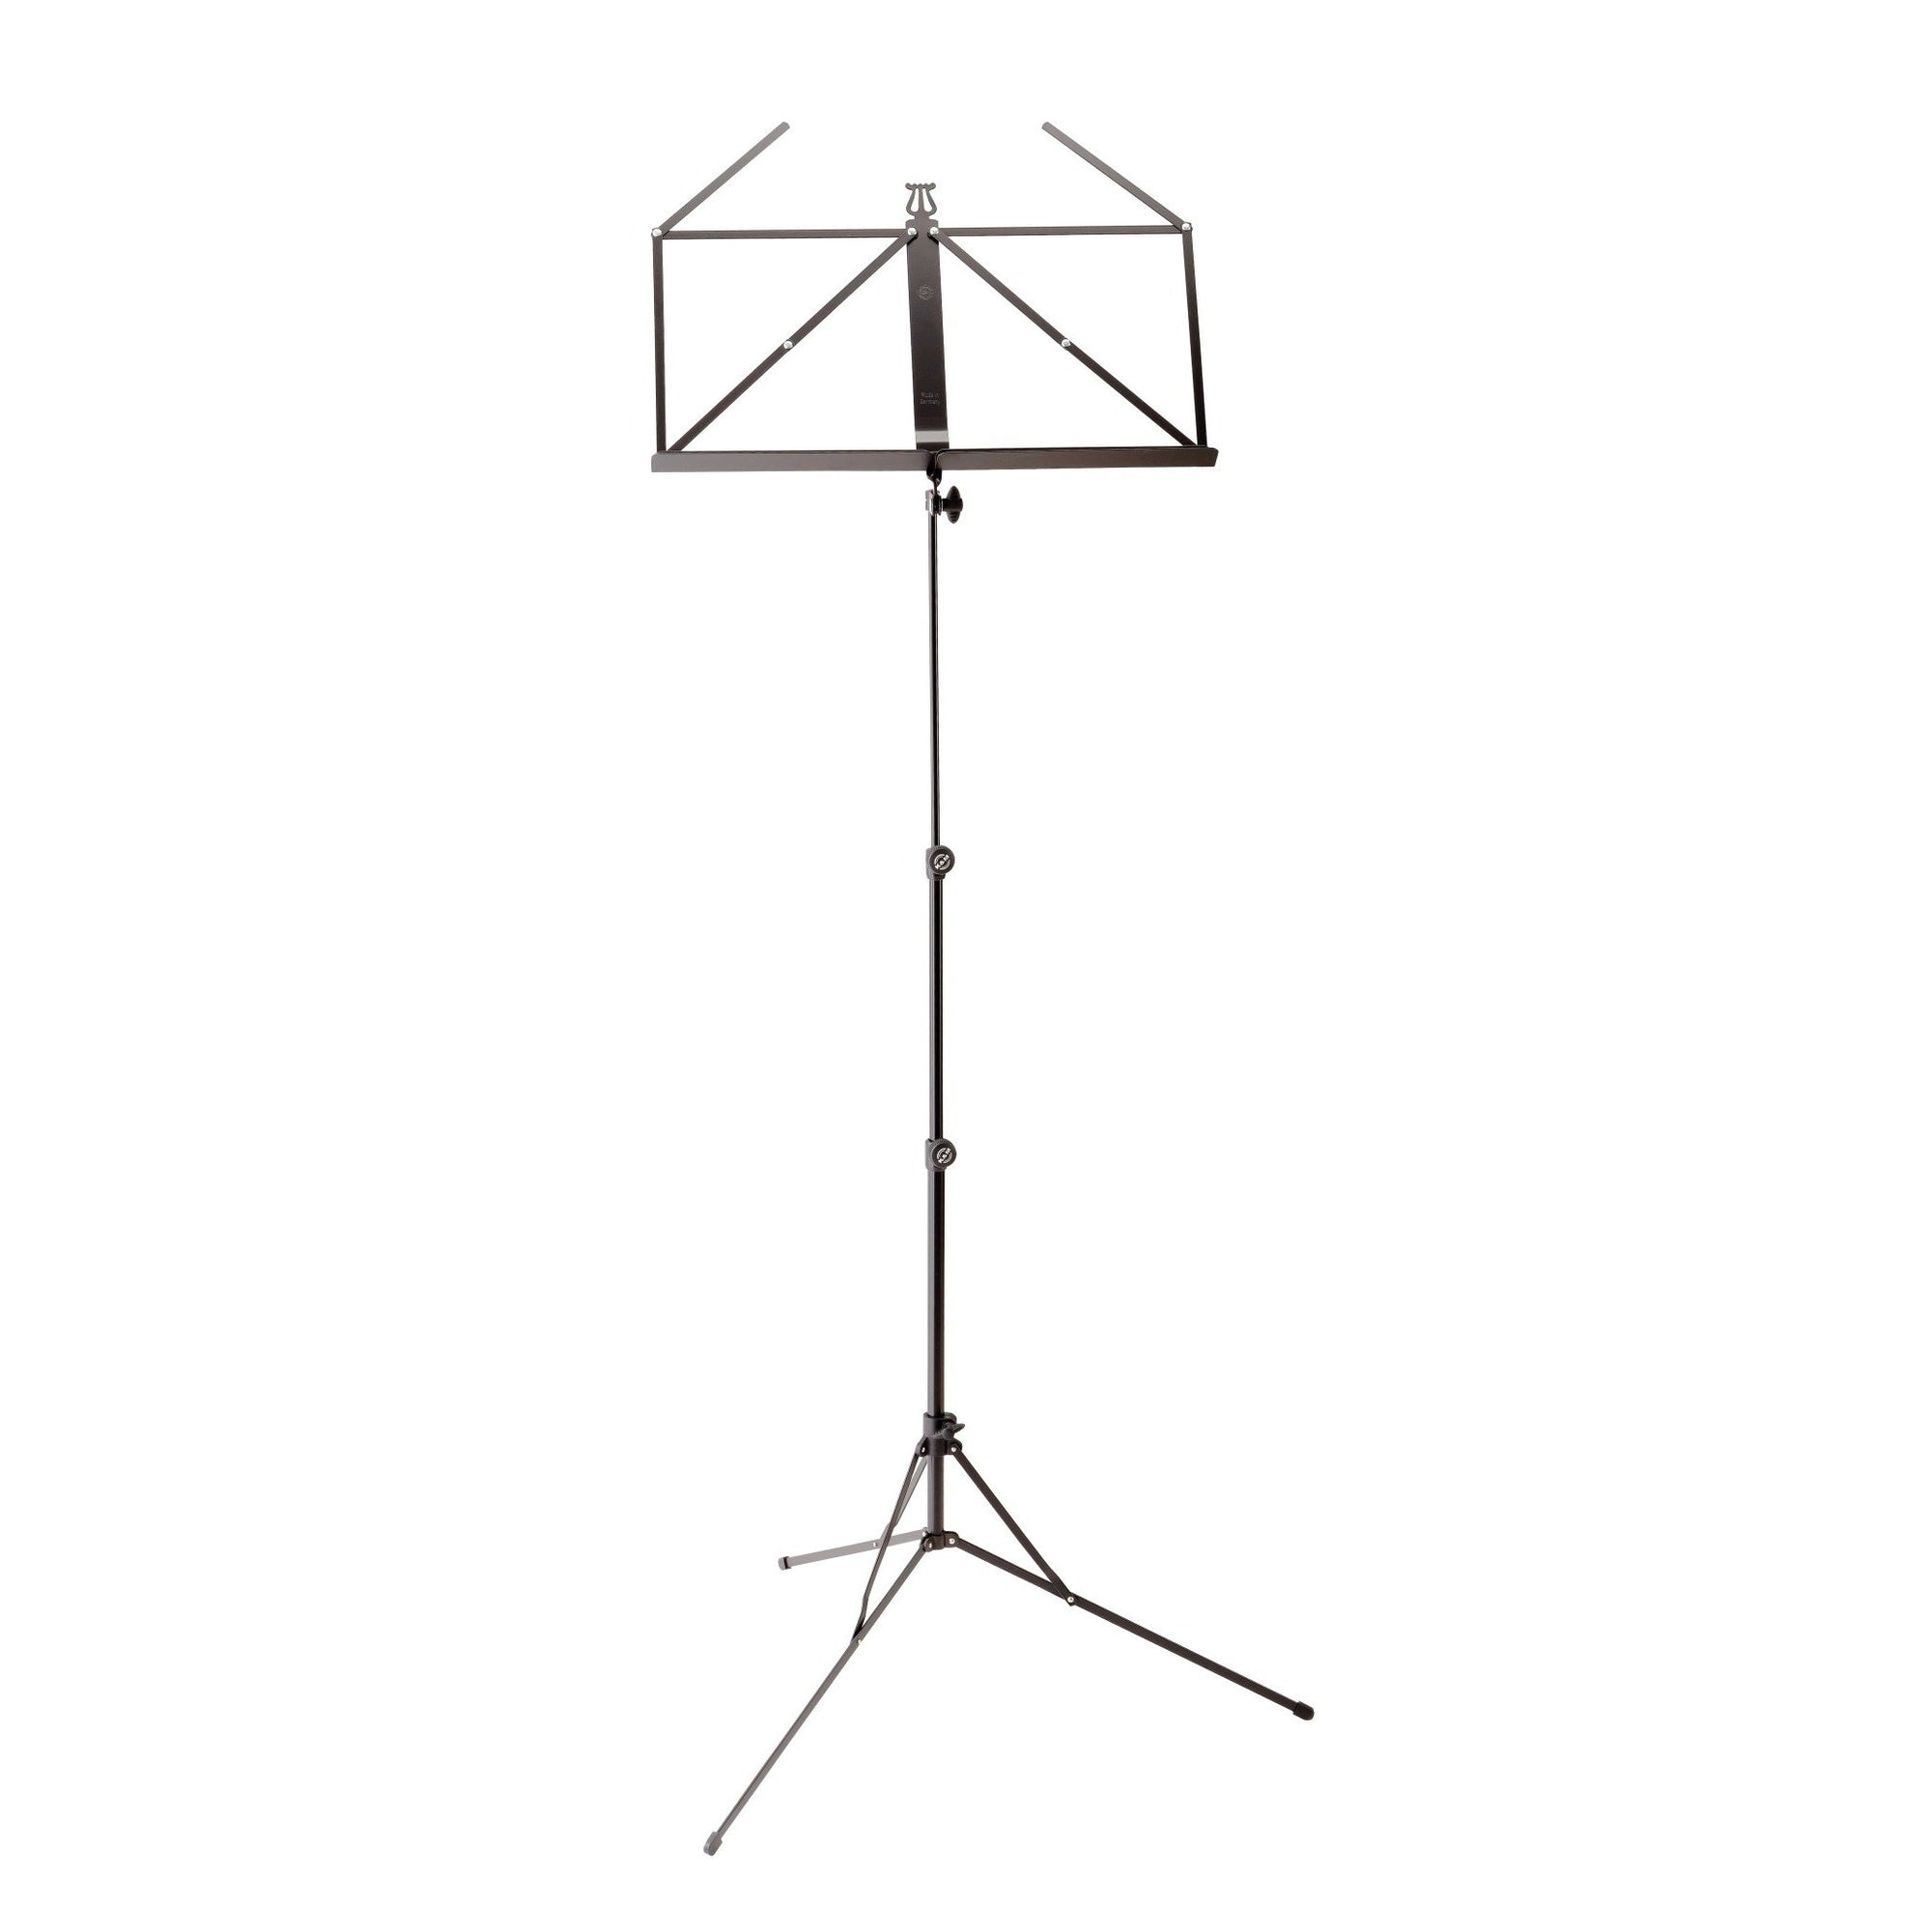 König & Meyer - 101 Baseline Music Stands with Collapsible Desk-Music Stand-König & Meyer-Music Elements